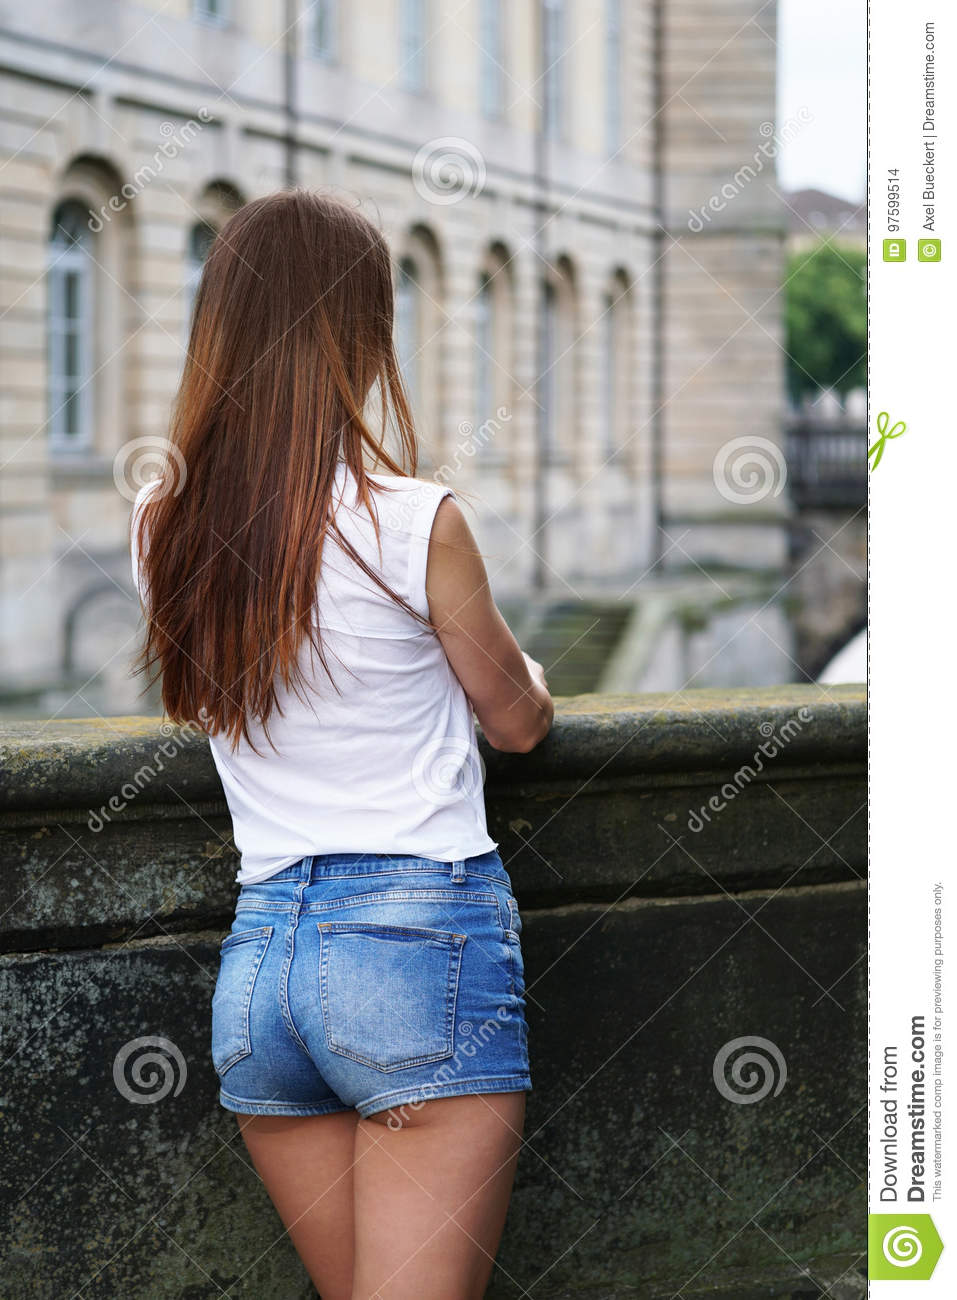 81434a0dfbb Rear view of young woman waering denim hot pants or booty shorts. fashion  trend.